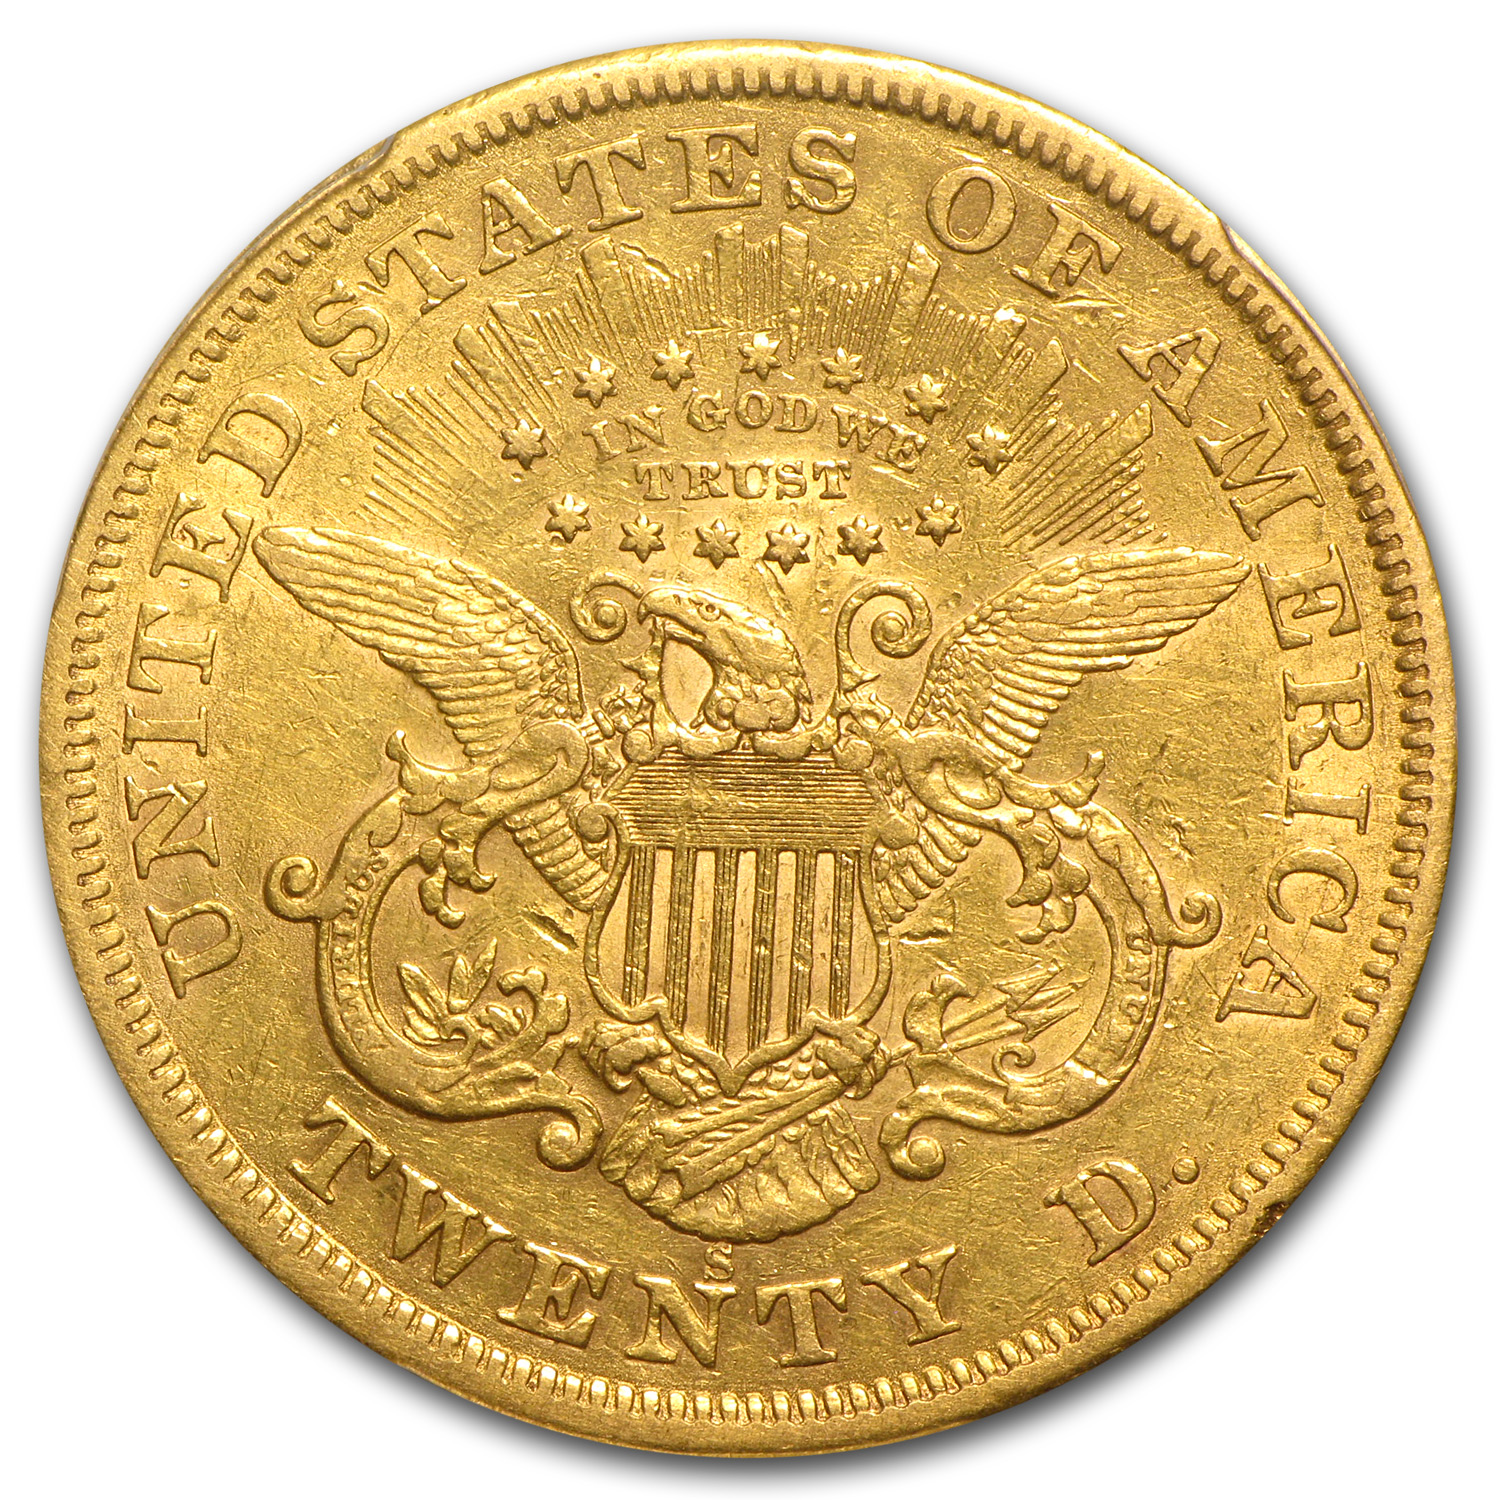 1866-S $20 Gold Liberty Double Eagle (Motto) - XF-45 PCGS MPD